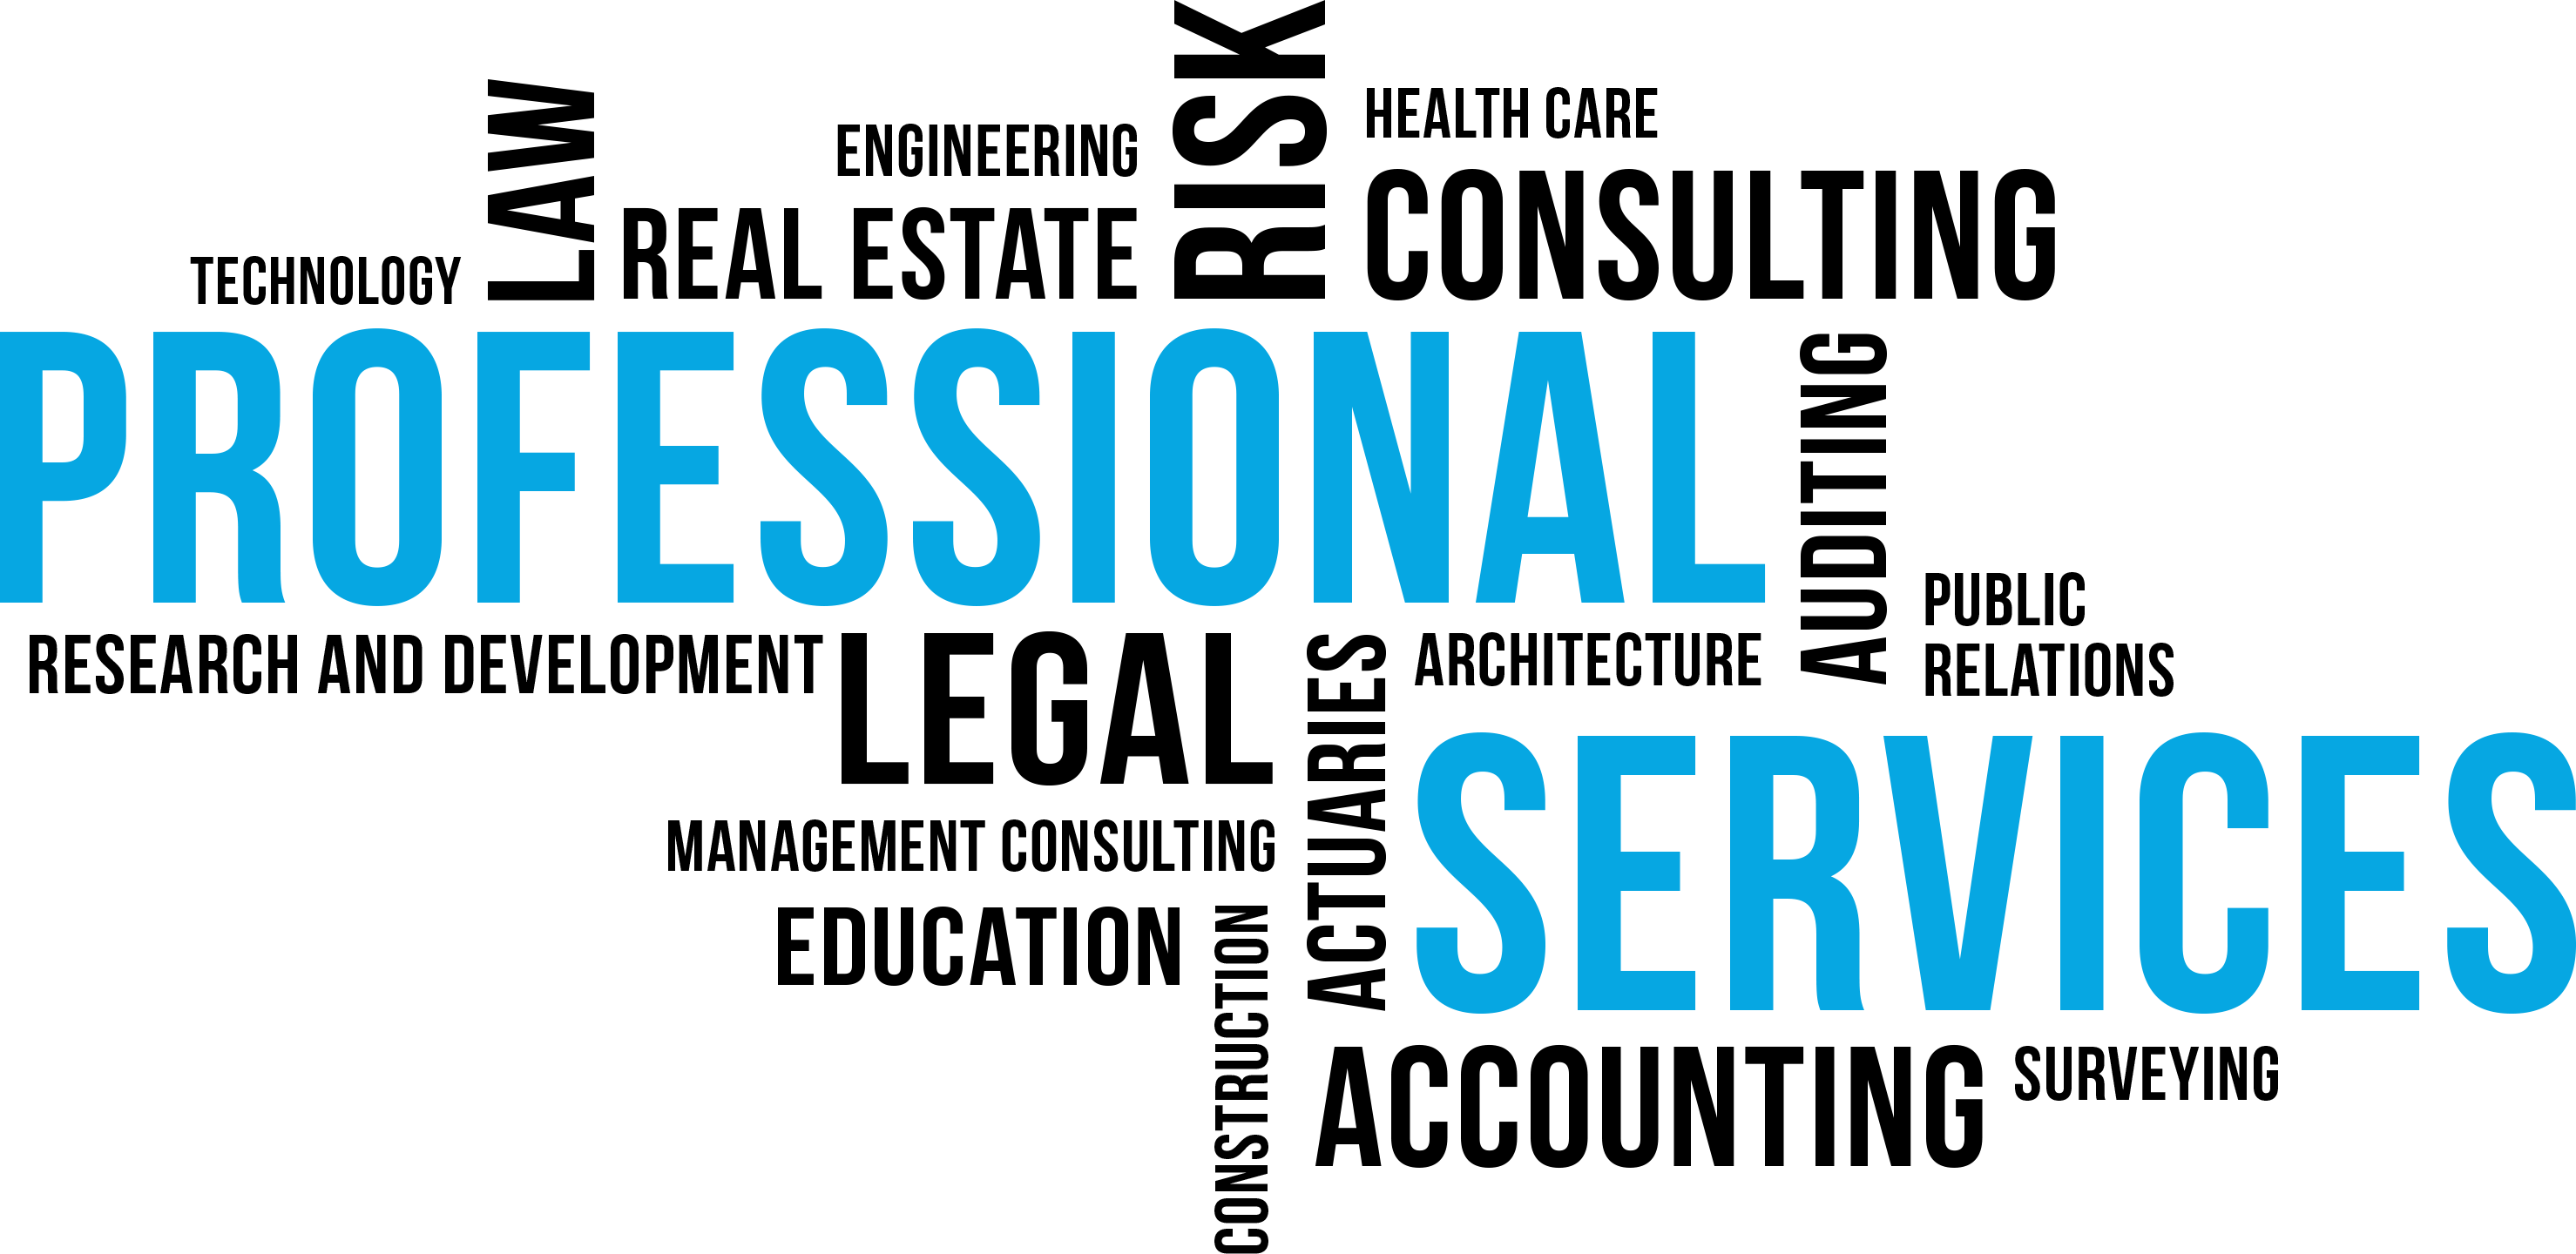 The Problem With Professional Services